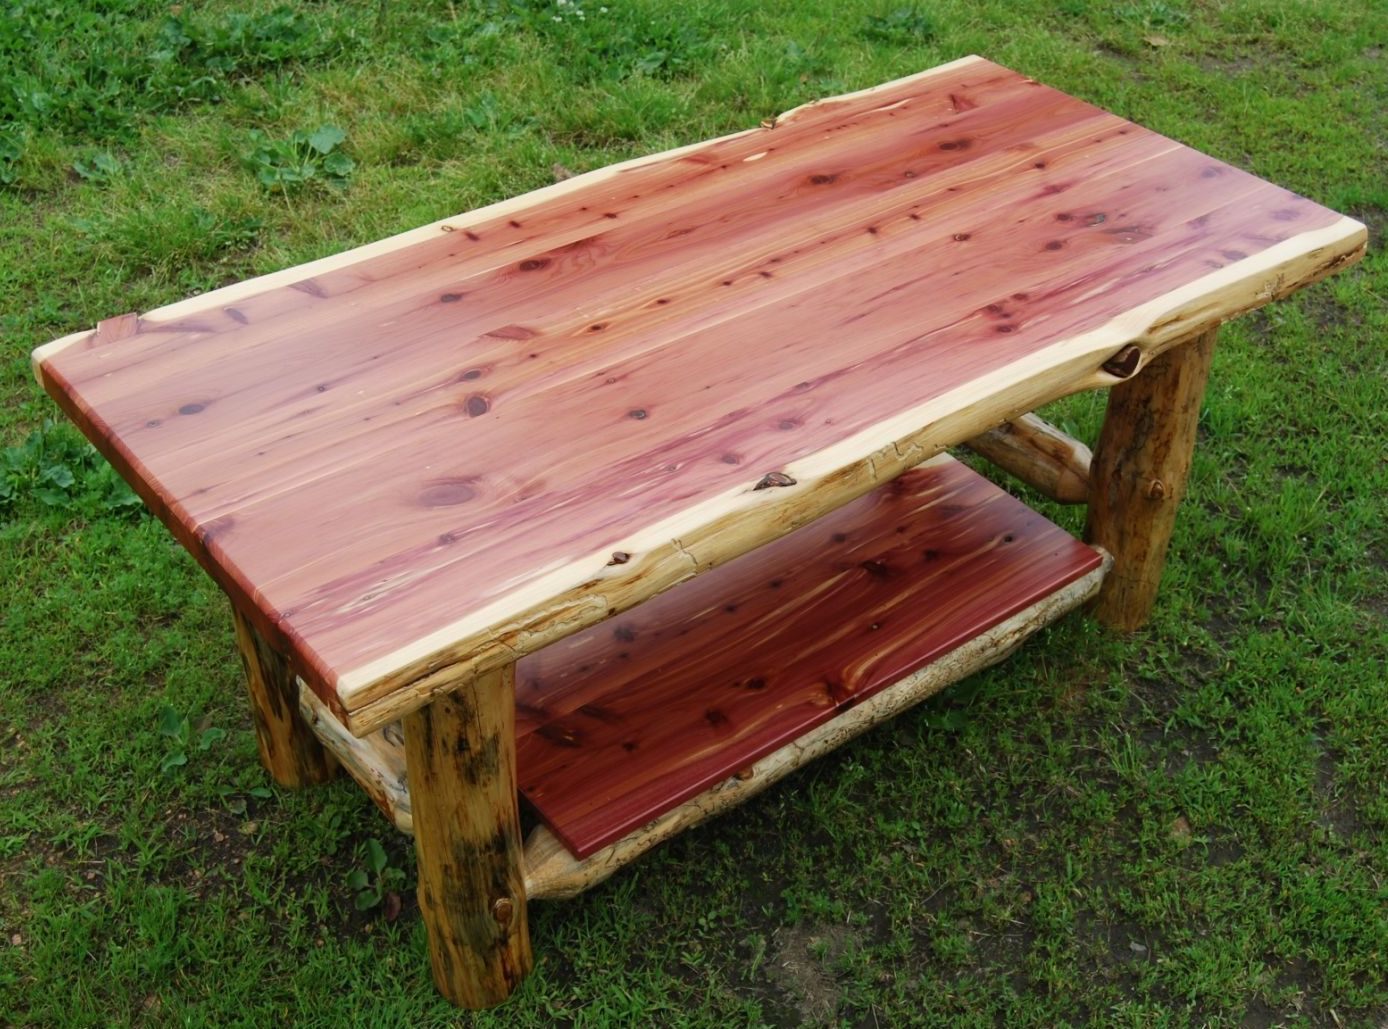 Rustic coffee tables unique and handmade from the log - Amish Made Rustic Red Cedar Coffee Table Available At Cabin Creations In Phillips